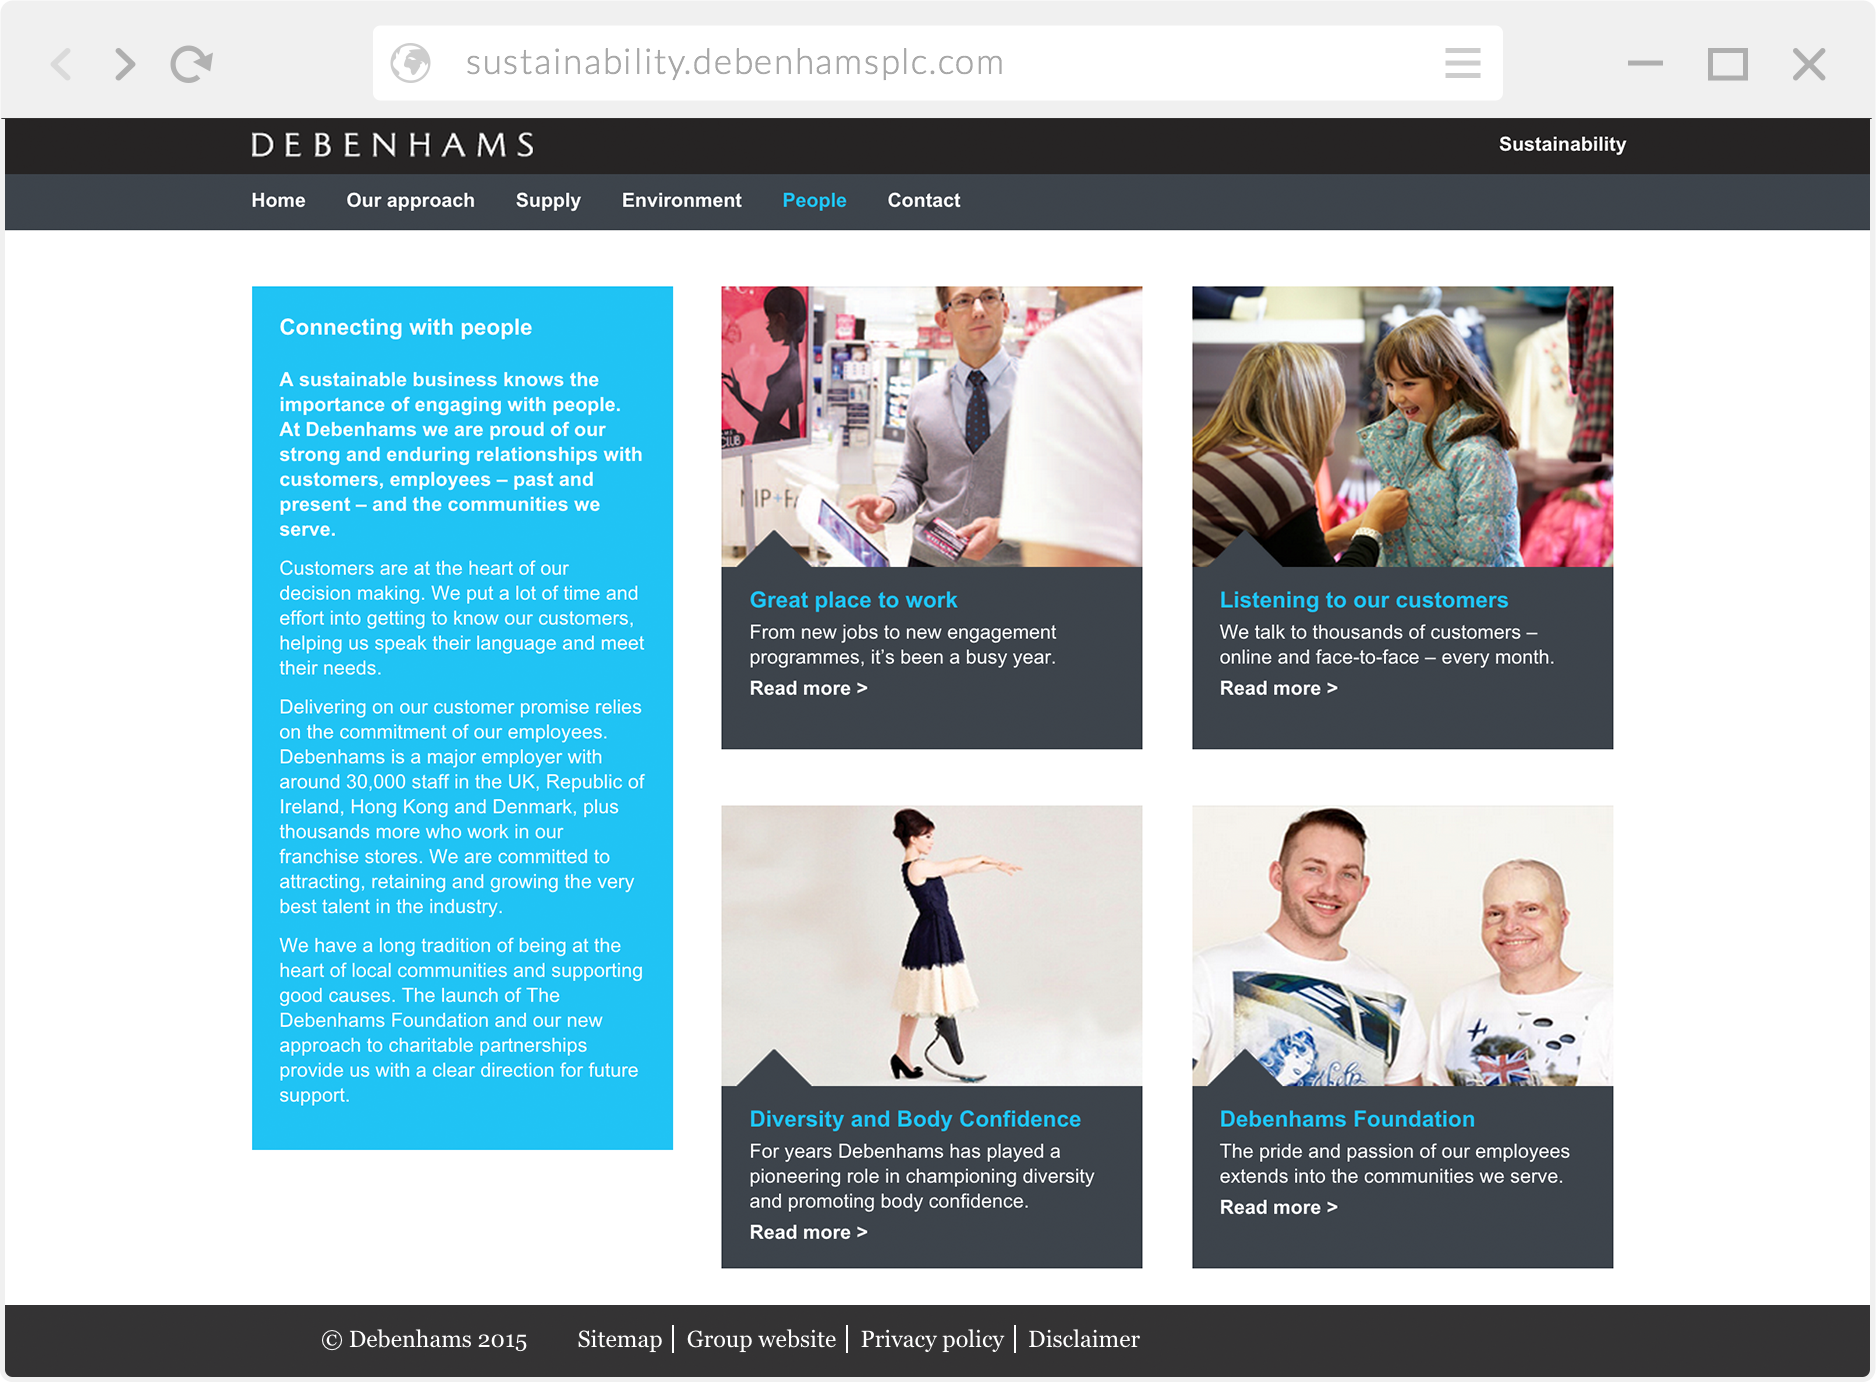 Debenham's website build